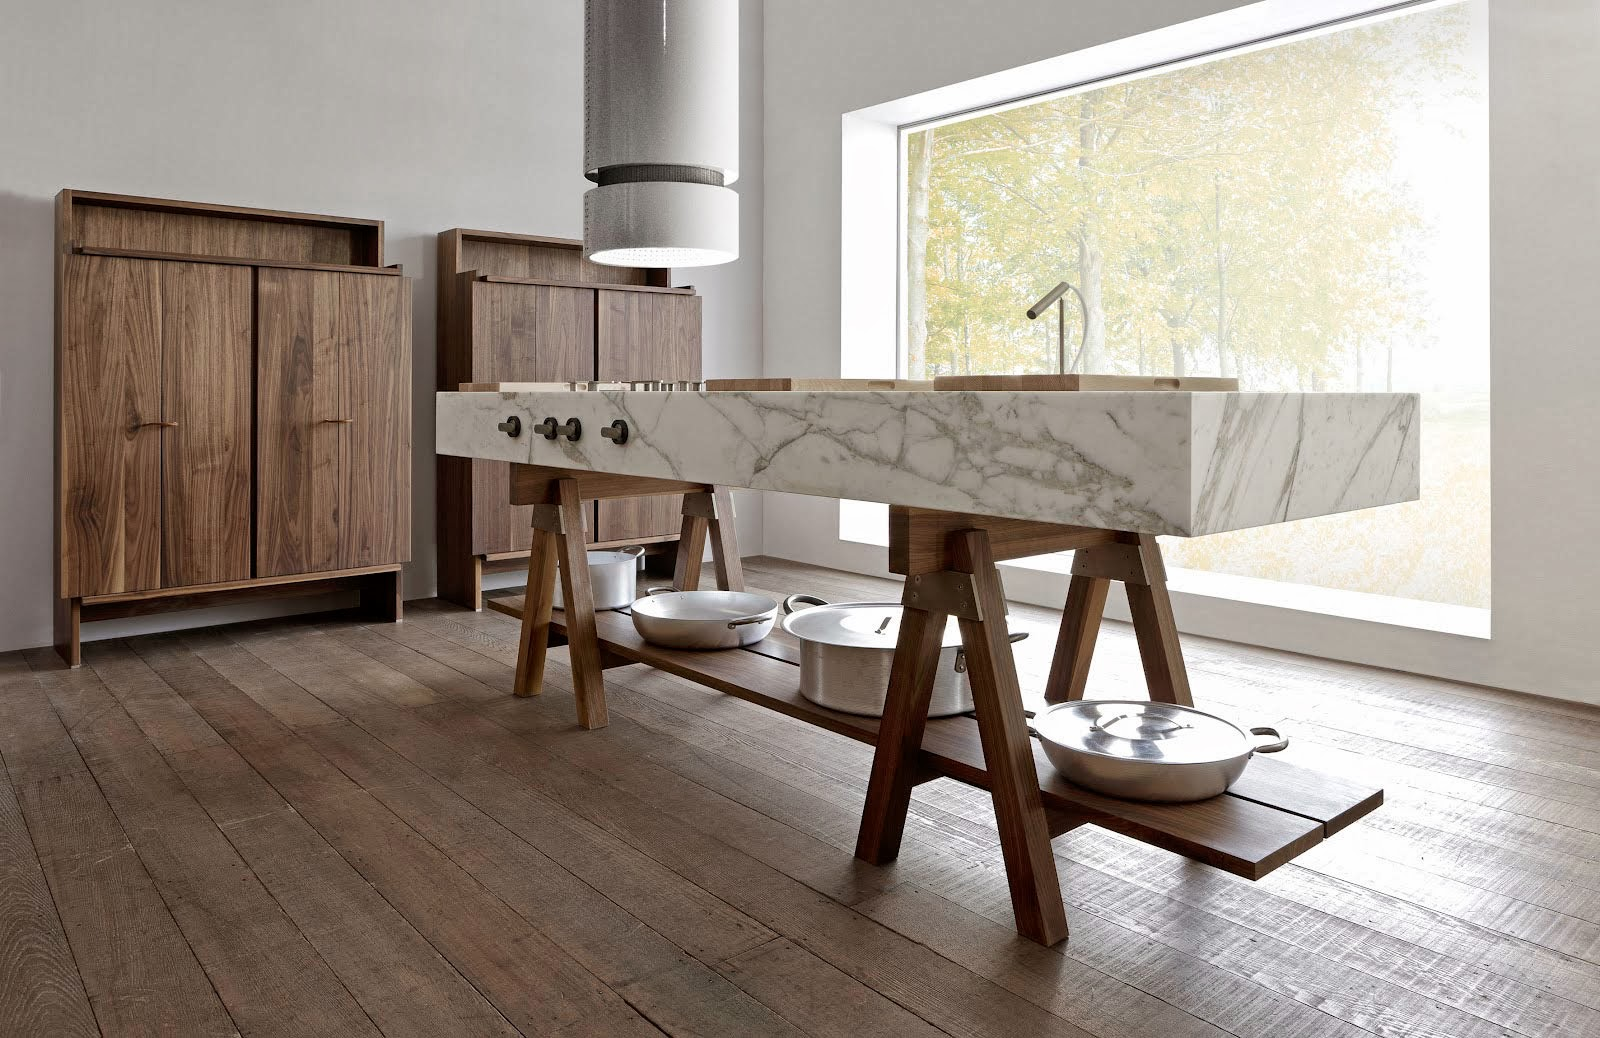 sketchup texture trends kitchens of author convivio by enzo berti kitchens of author convivio by enzo berti